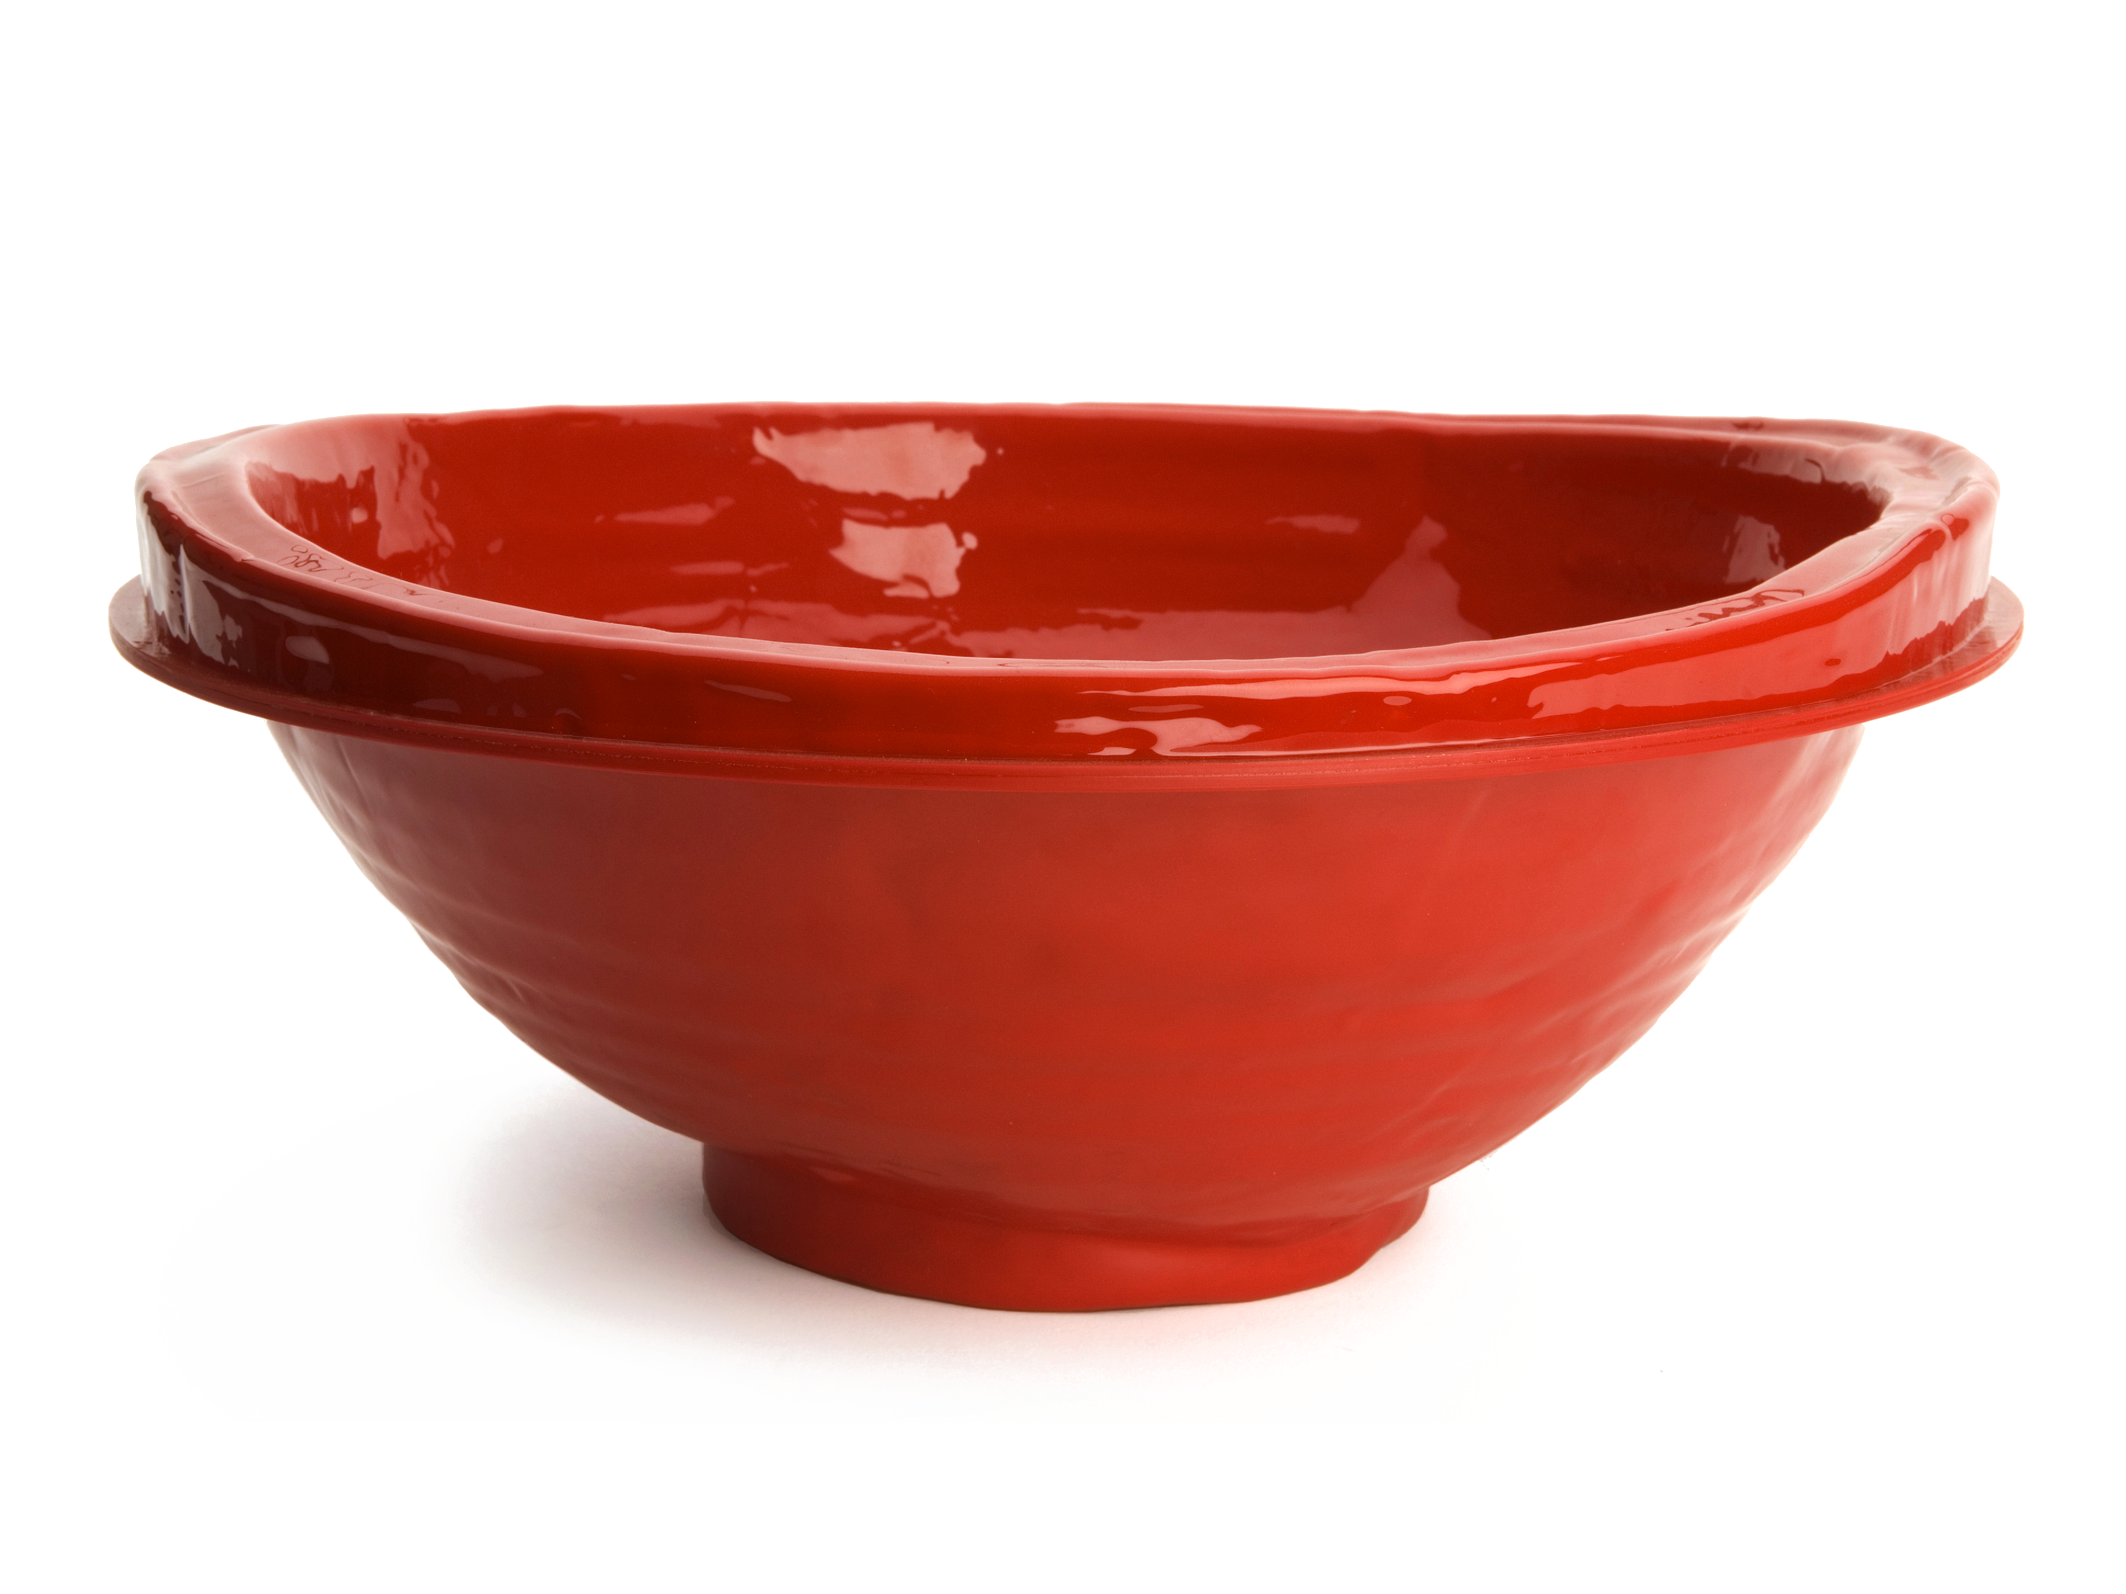 Punch bowl png. Images all